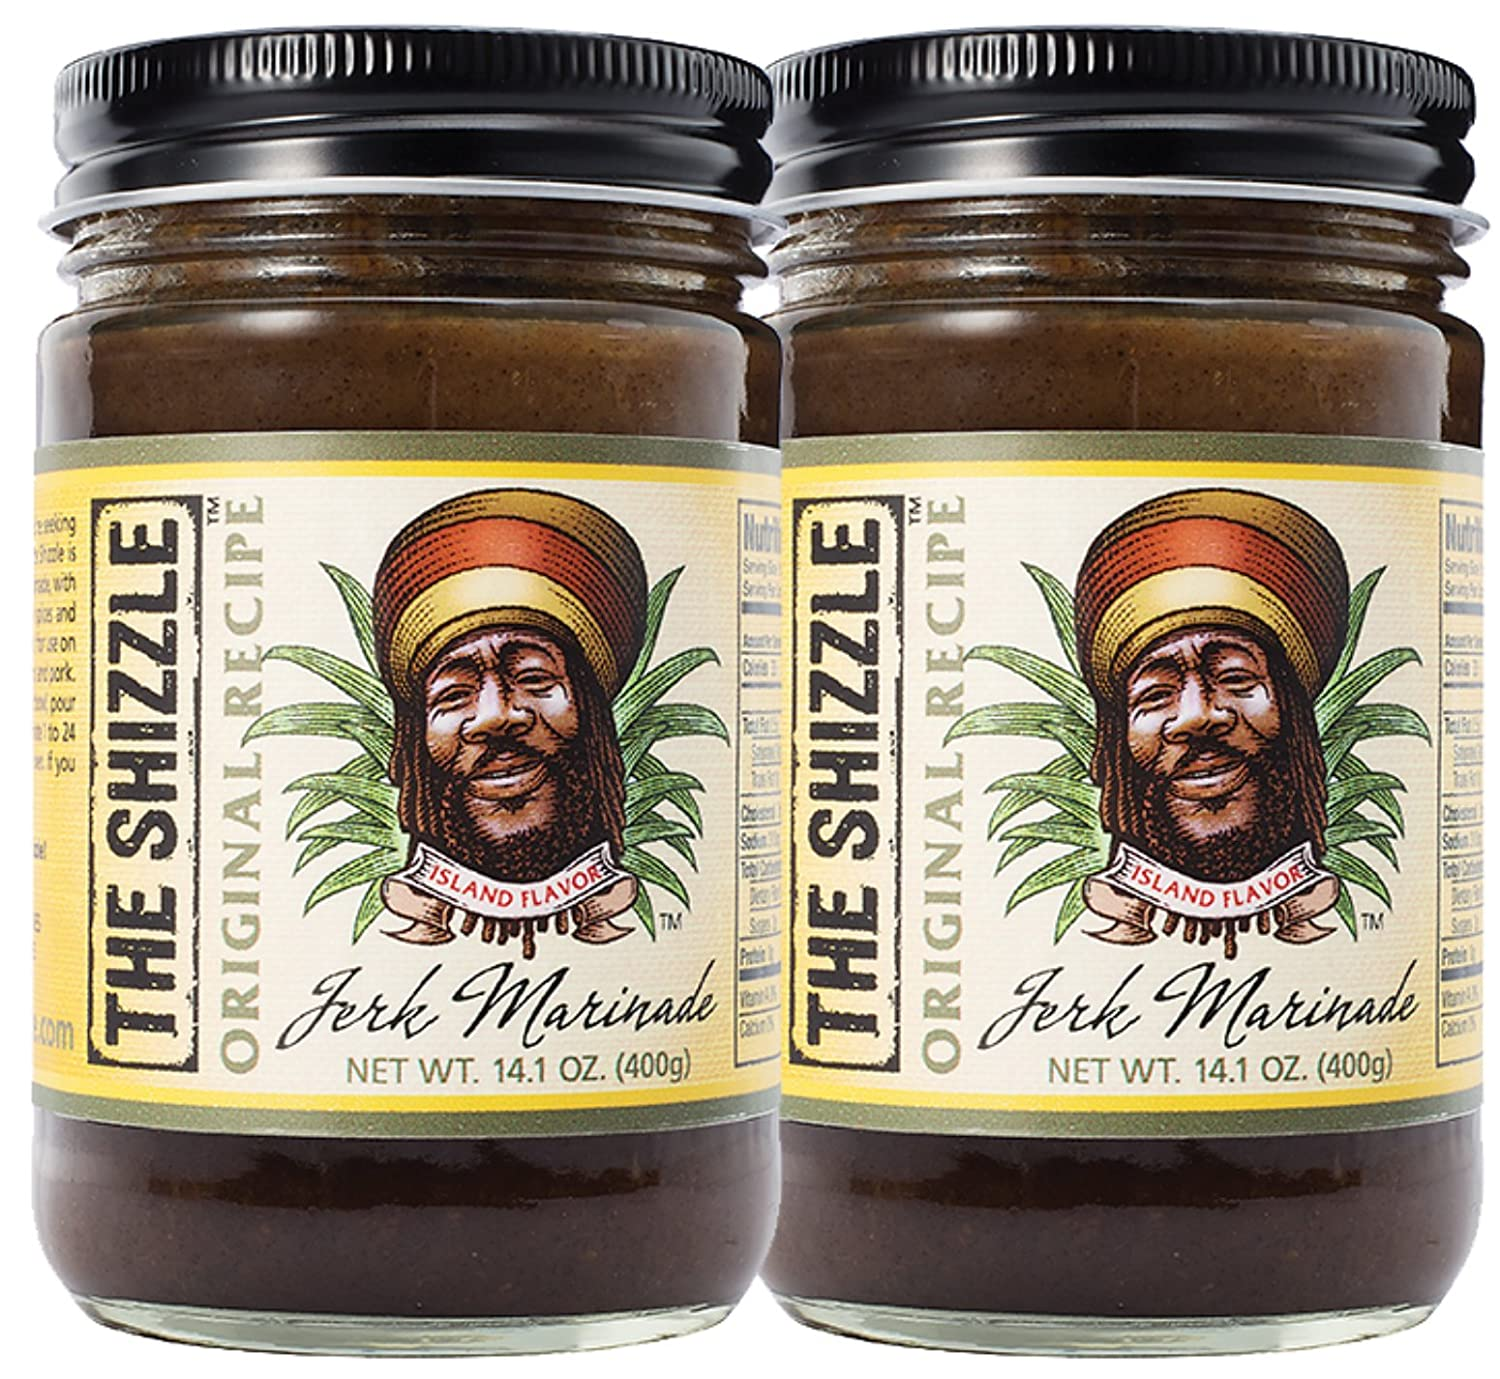 The Shizzle Superior Original Jerk Marinade Ranking integrated 1st place Two Ja 14 Pack Ounce –